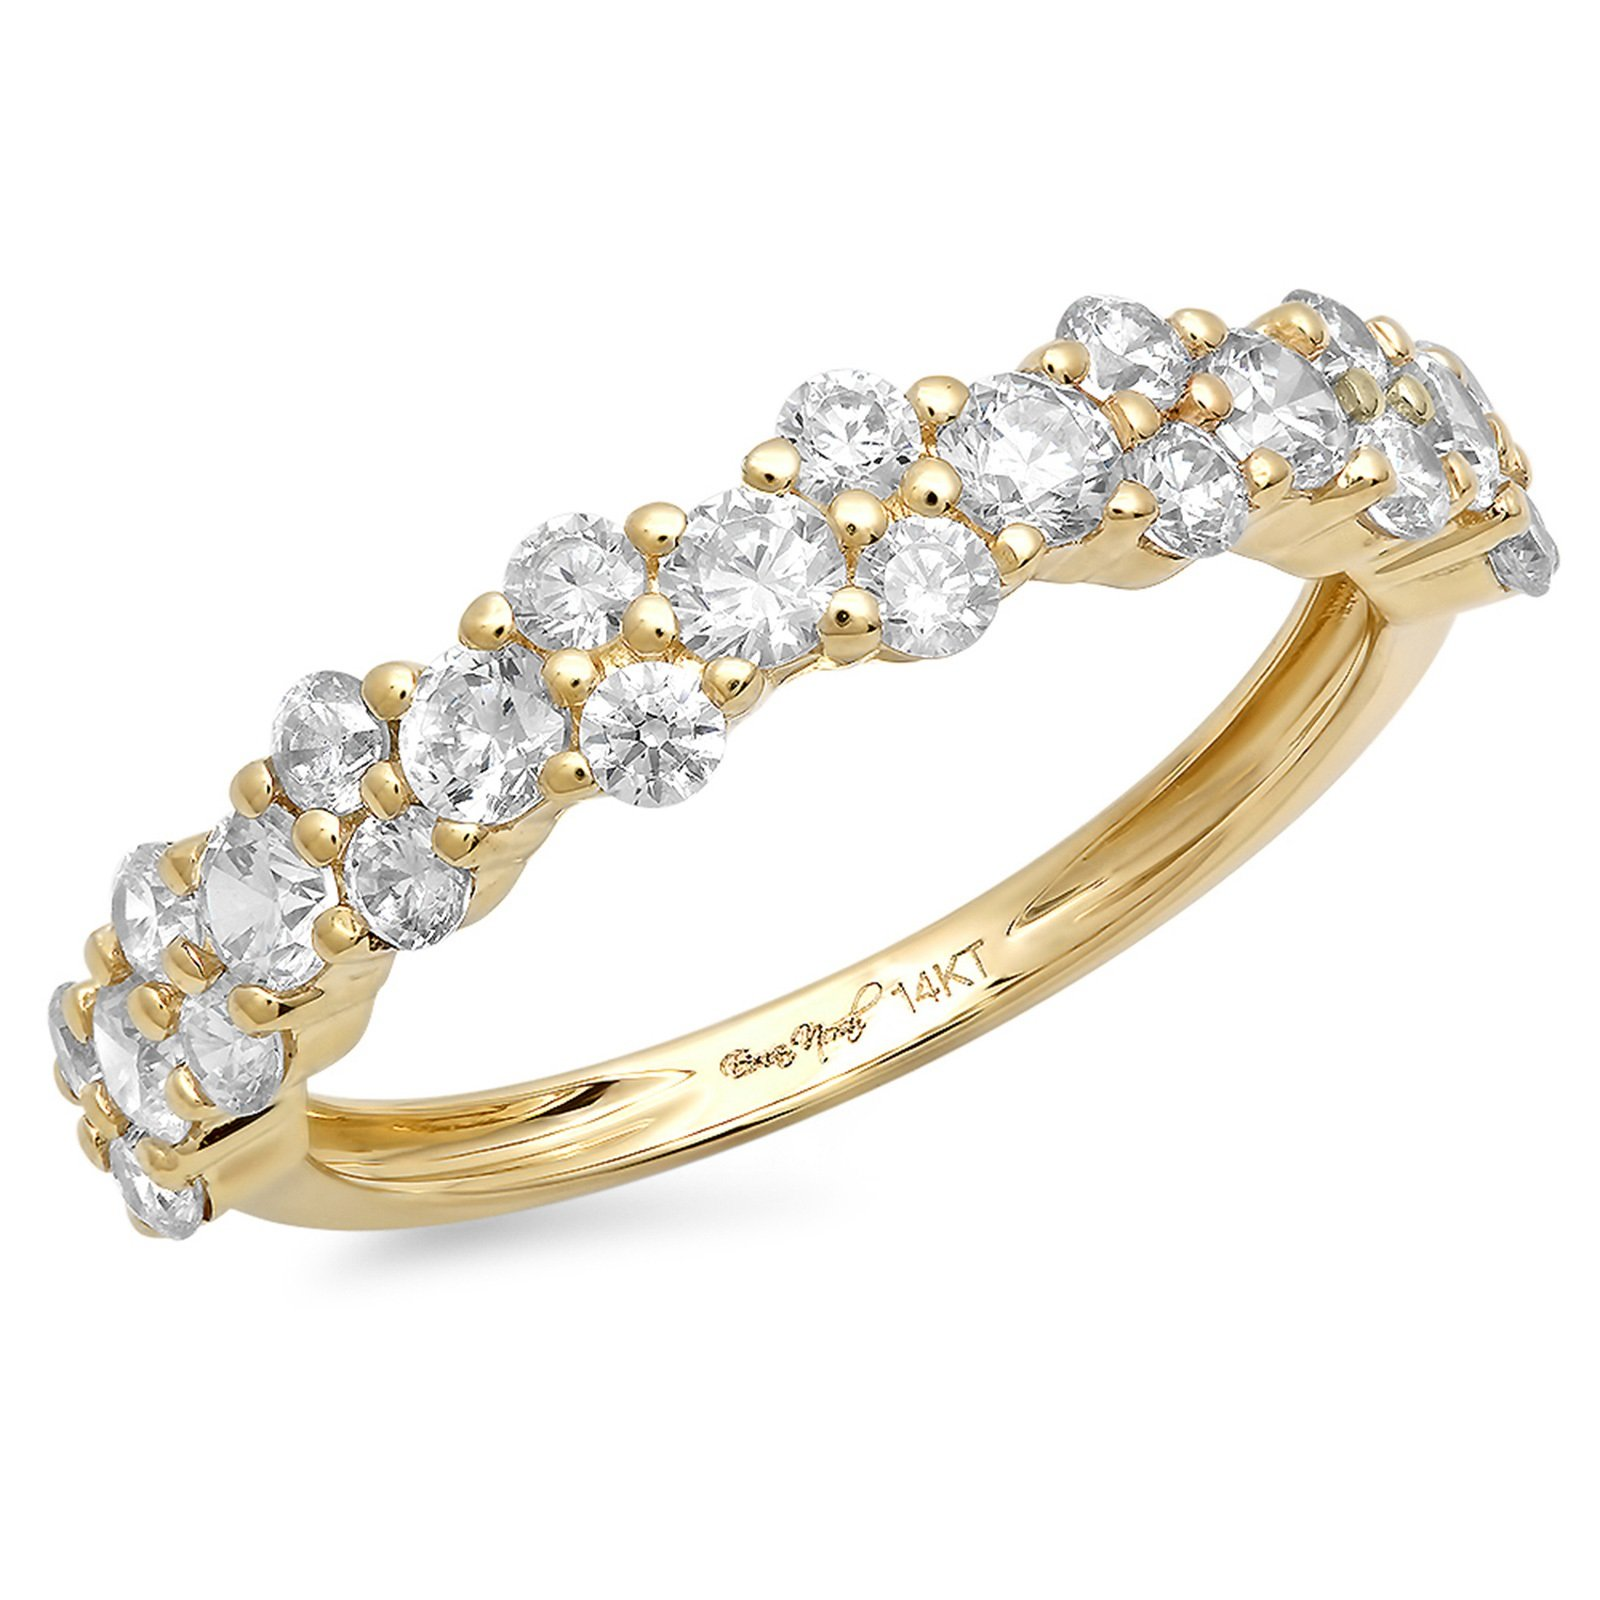 1 Ct Cluster Round Cut Unisex Pave Engagement Wedding Bridal Anniversary Ring Band 14K Yellow Gold, Size 10, Clara Pucci